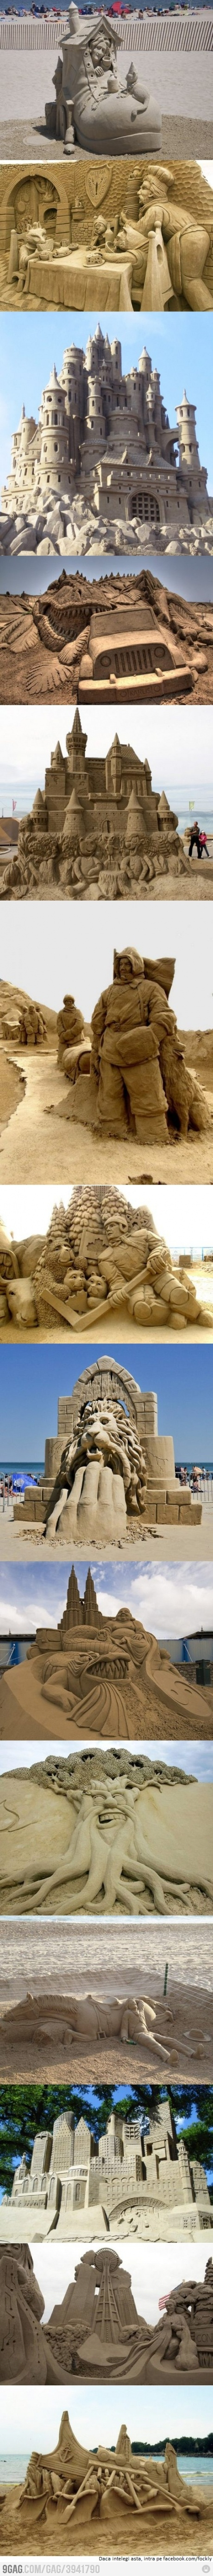 ~Extraordinary sand sculptures~ II have made some sand castles but nothing like this